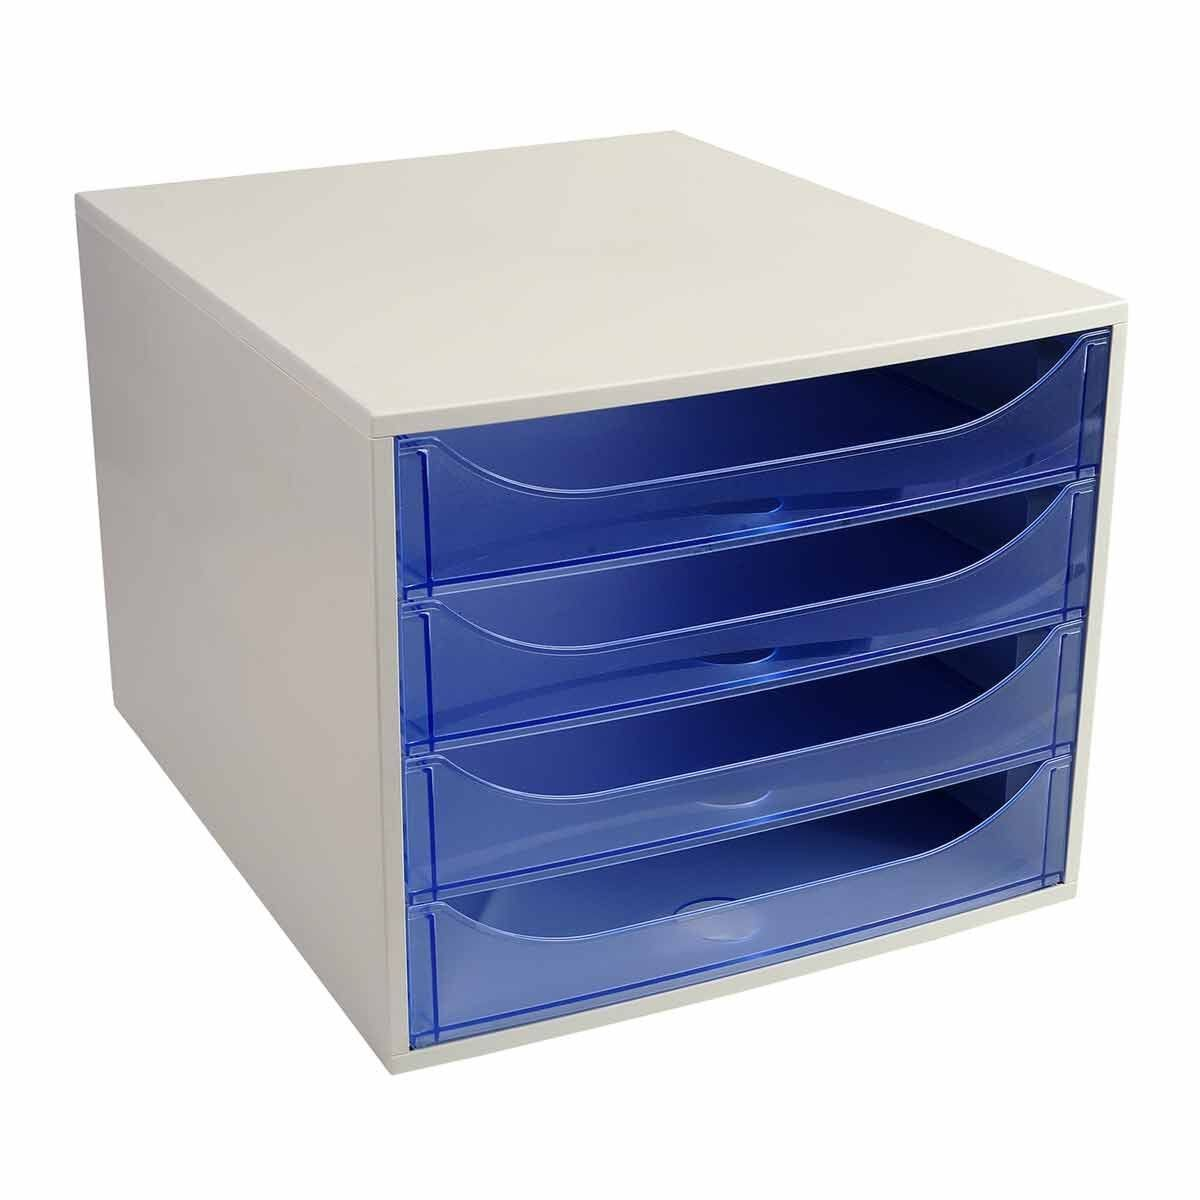 Exacompta EcoBox 4 Drawer Unit Grey/Blue